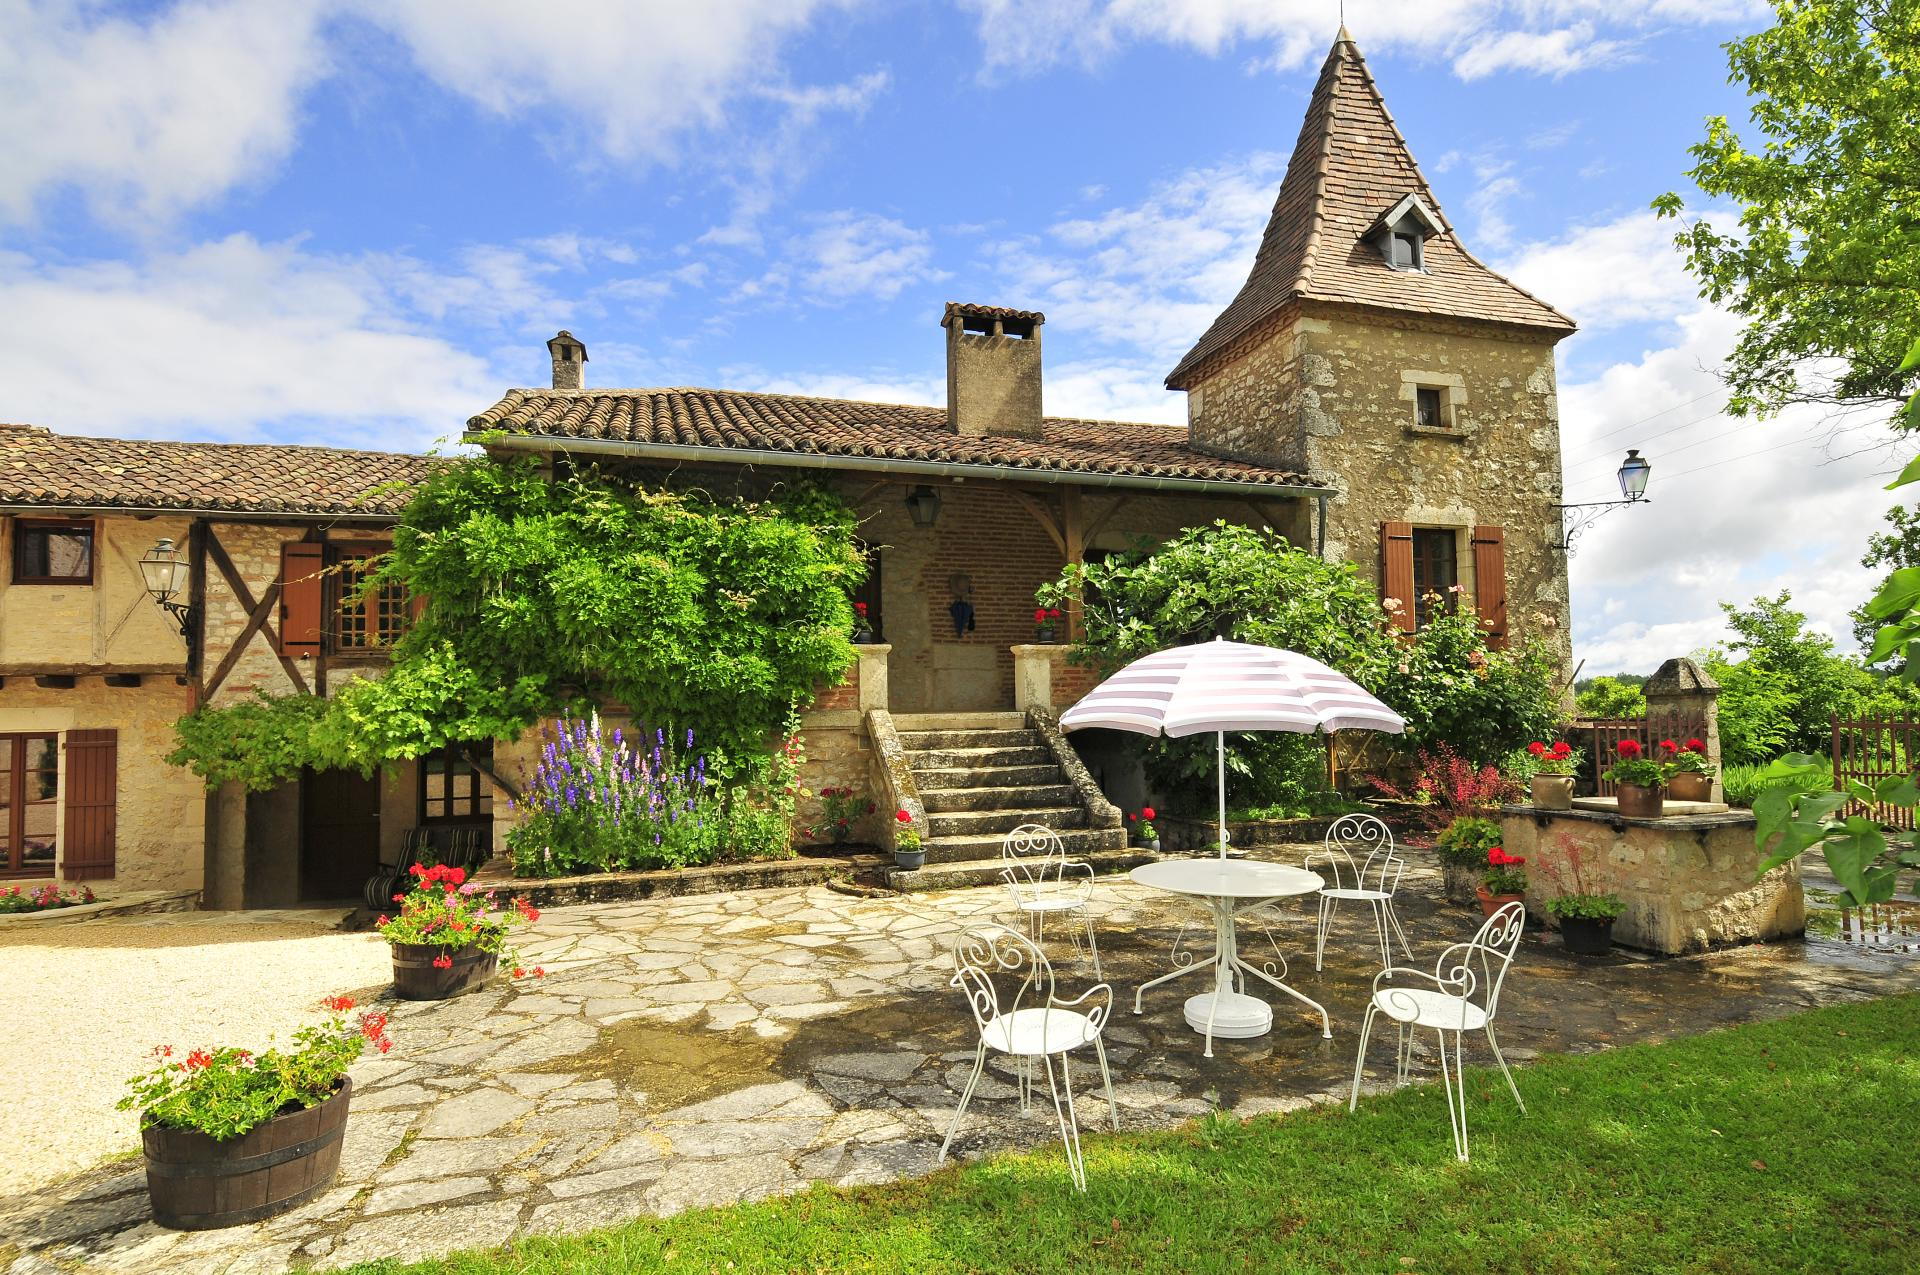 Sleeps 12 - rental house in south west France